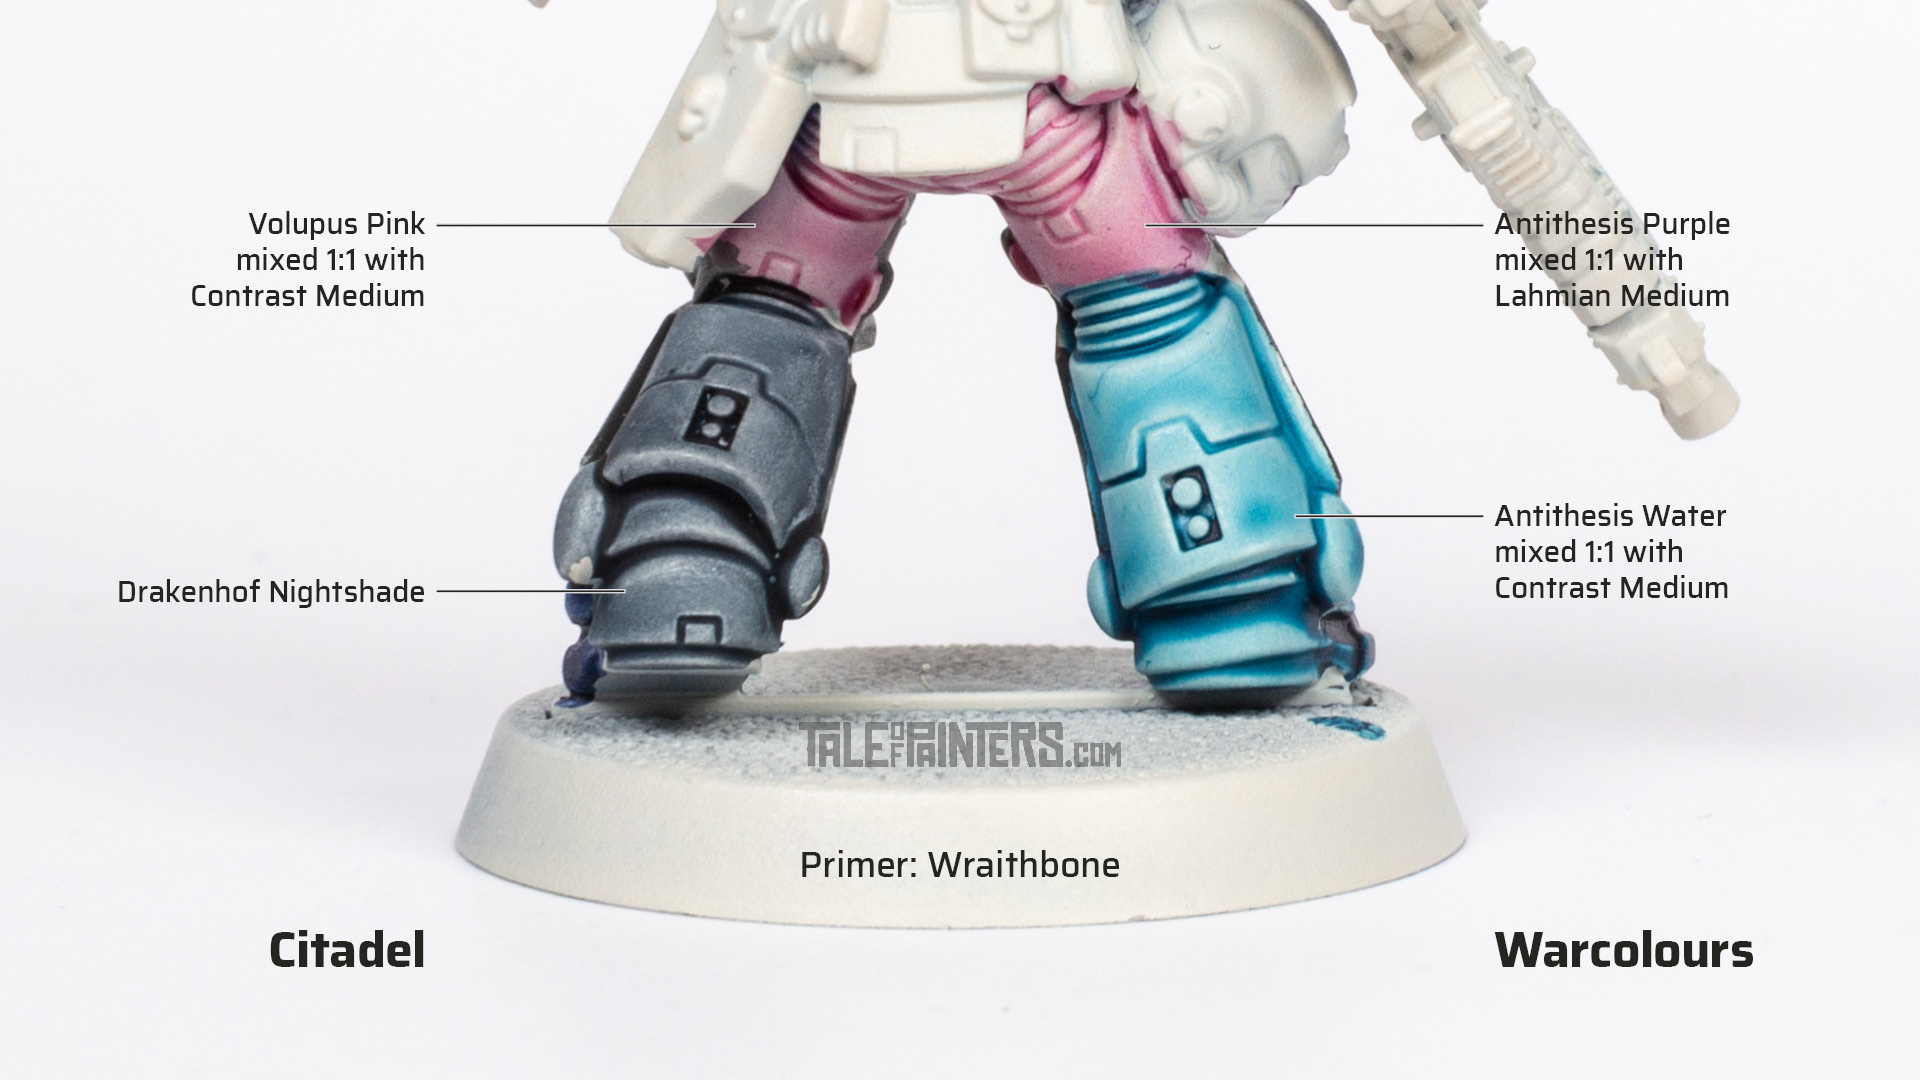 Antithesis Paints thinned with Lahmian and Contrast Medium on a Space Marine Intercessor